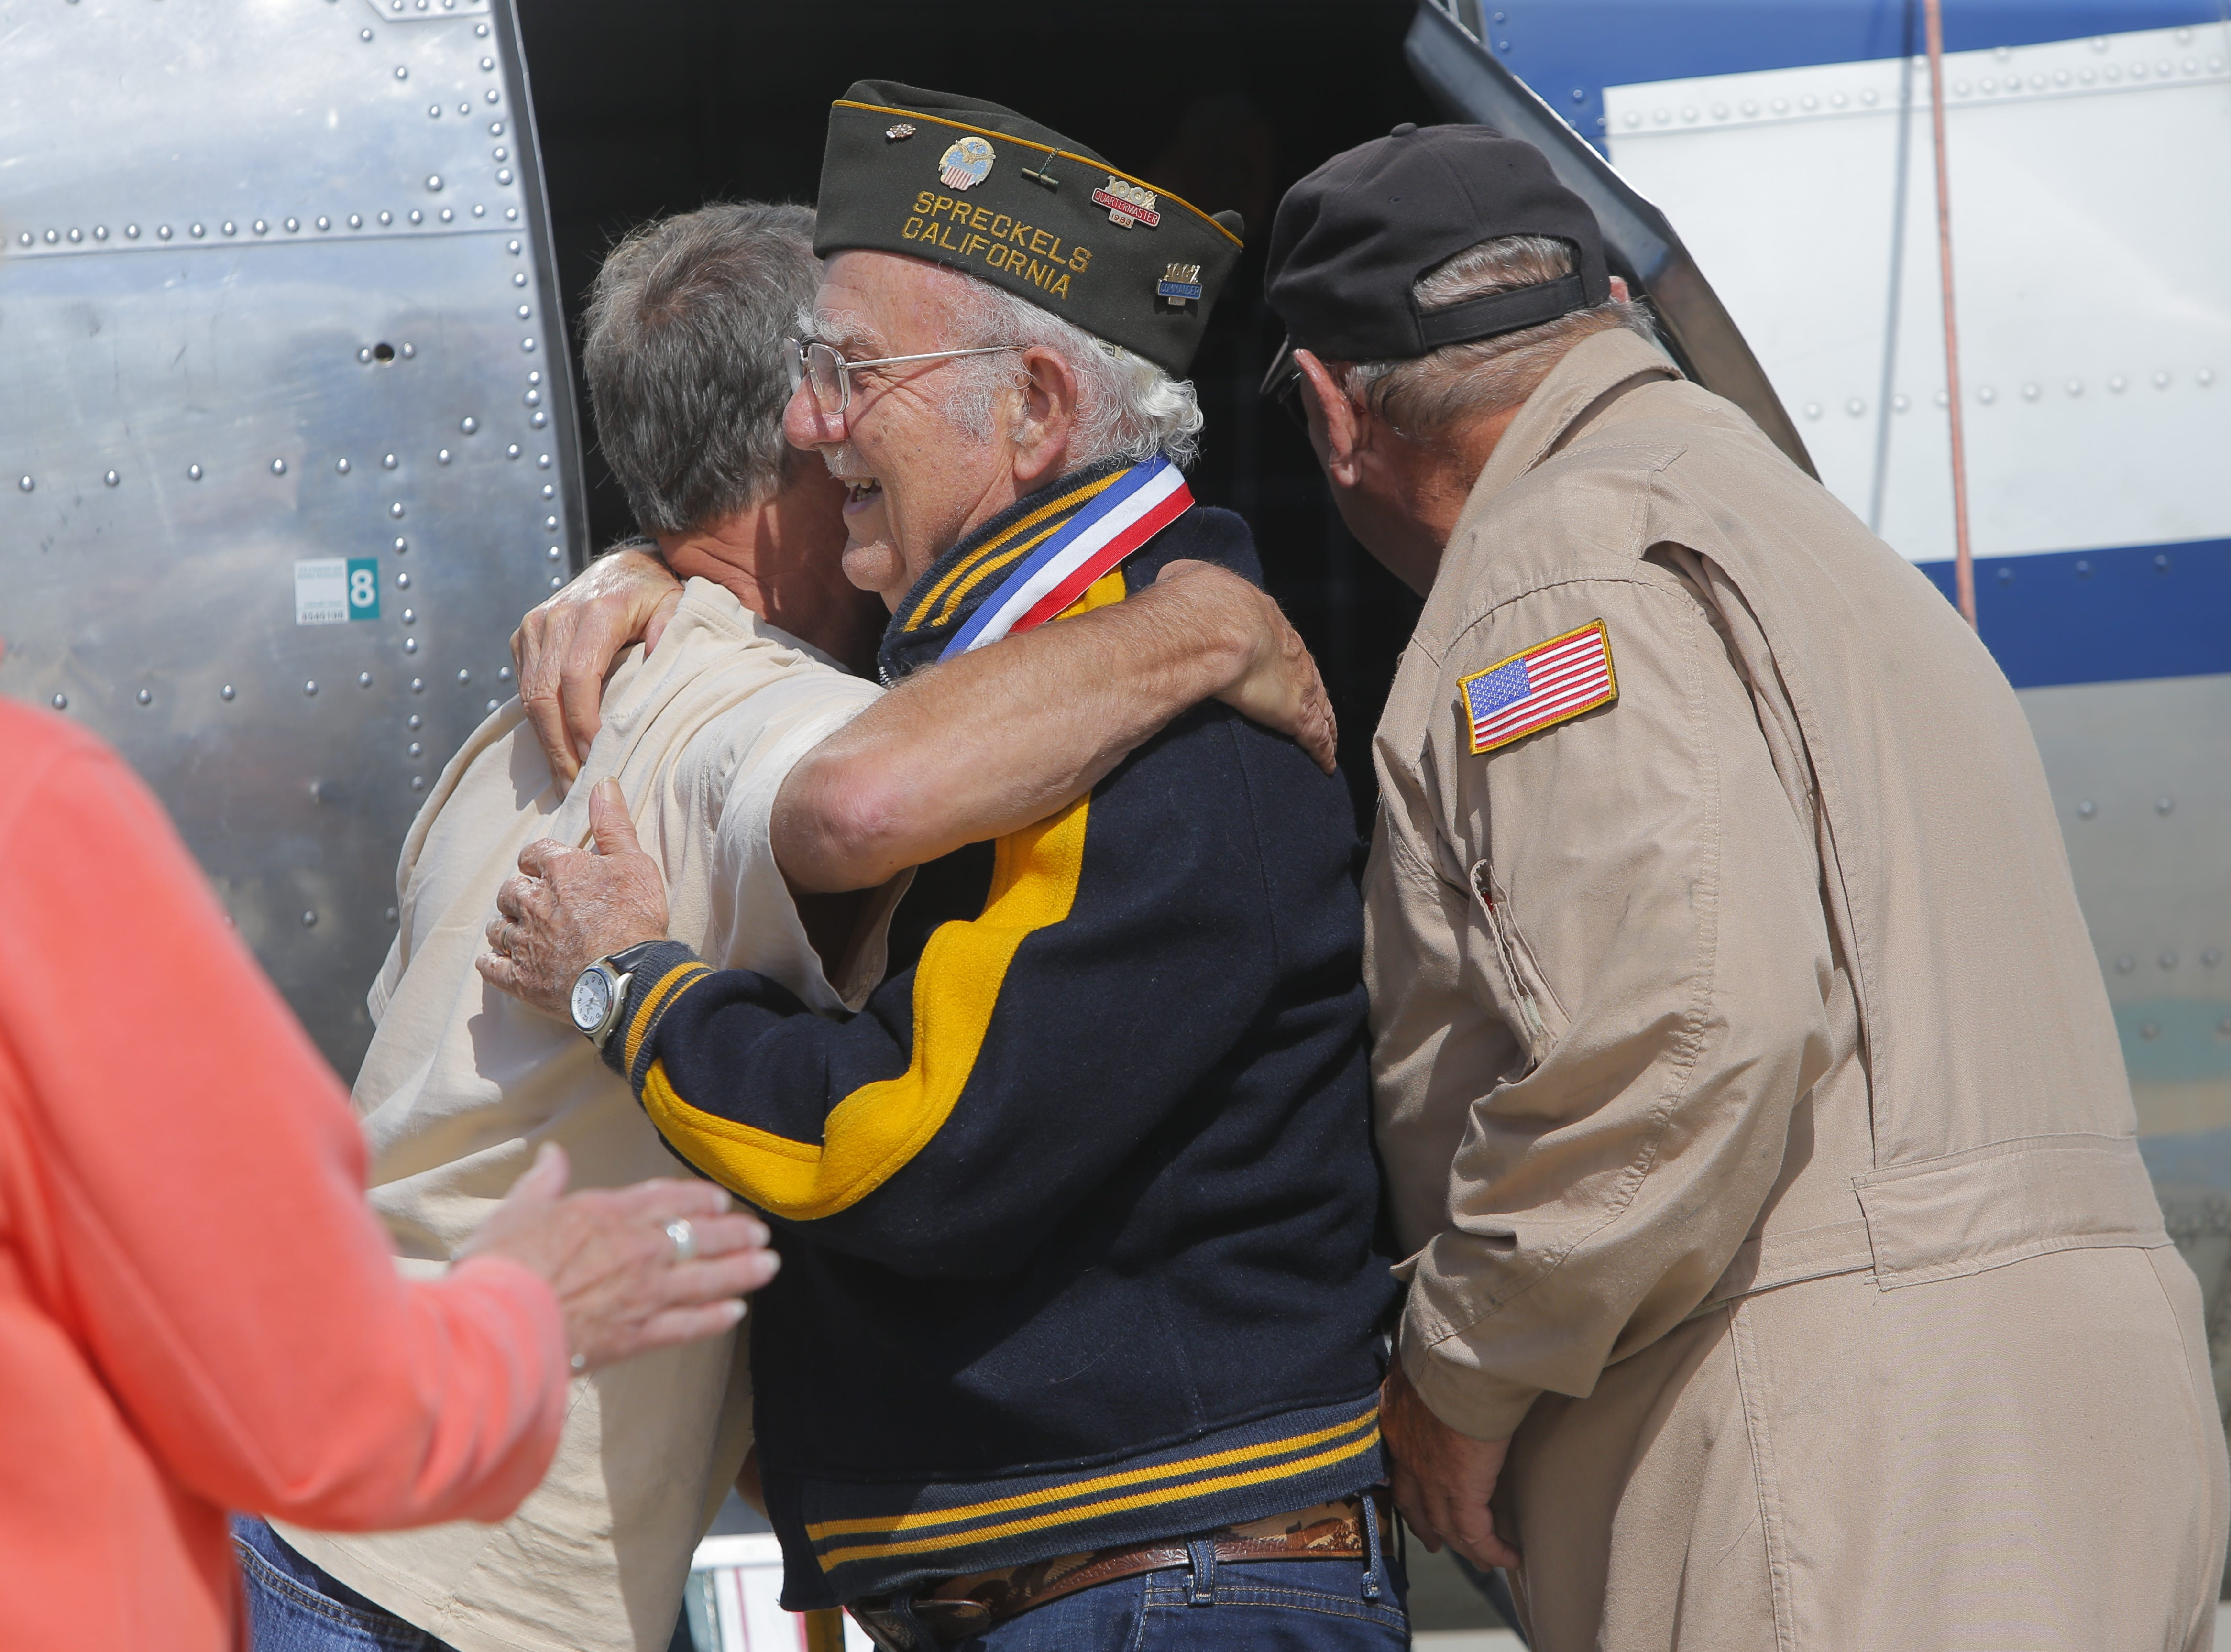 Ray Morasca, of Salinas,embraces a fellow passenger on a flight of a B-17 Flying Fortress Monday. The plane came to Salinas for the California International Airshow this weekend. It arrived on Monday and took several passengers, including WWII veteran Ray Morasca, for a spin.